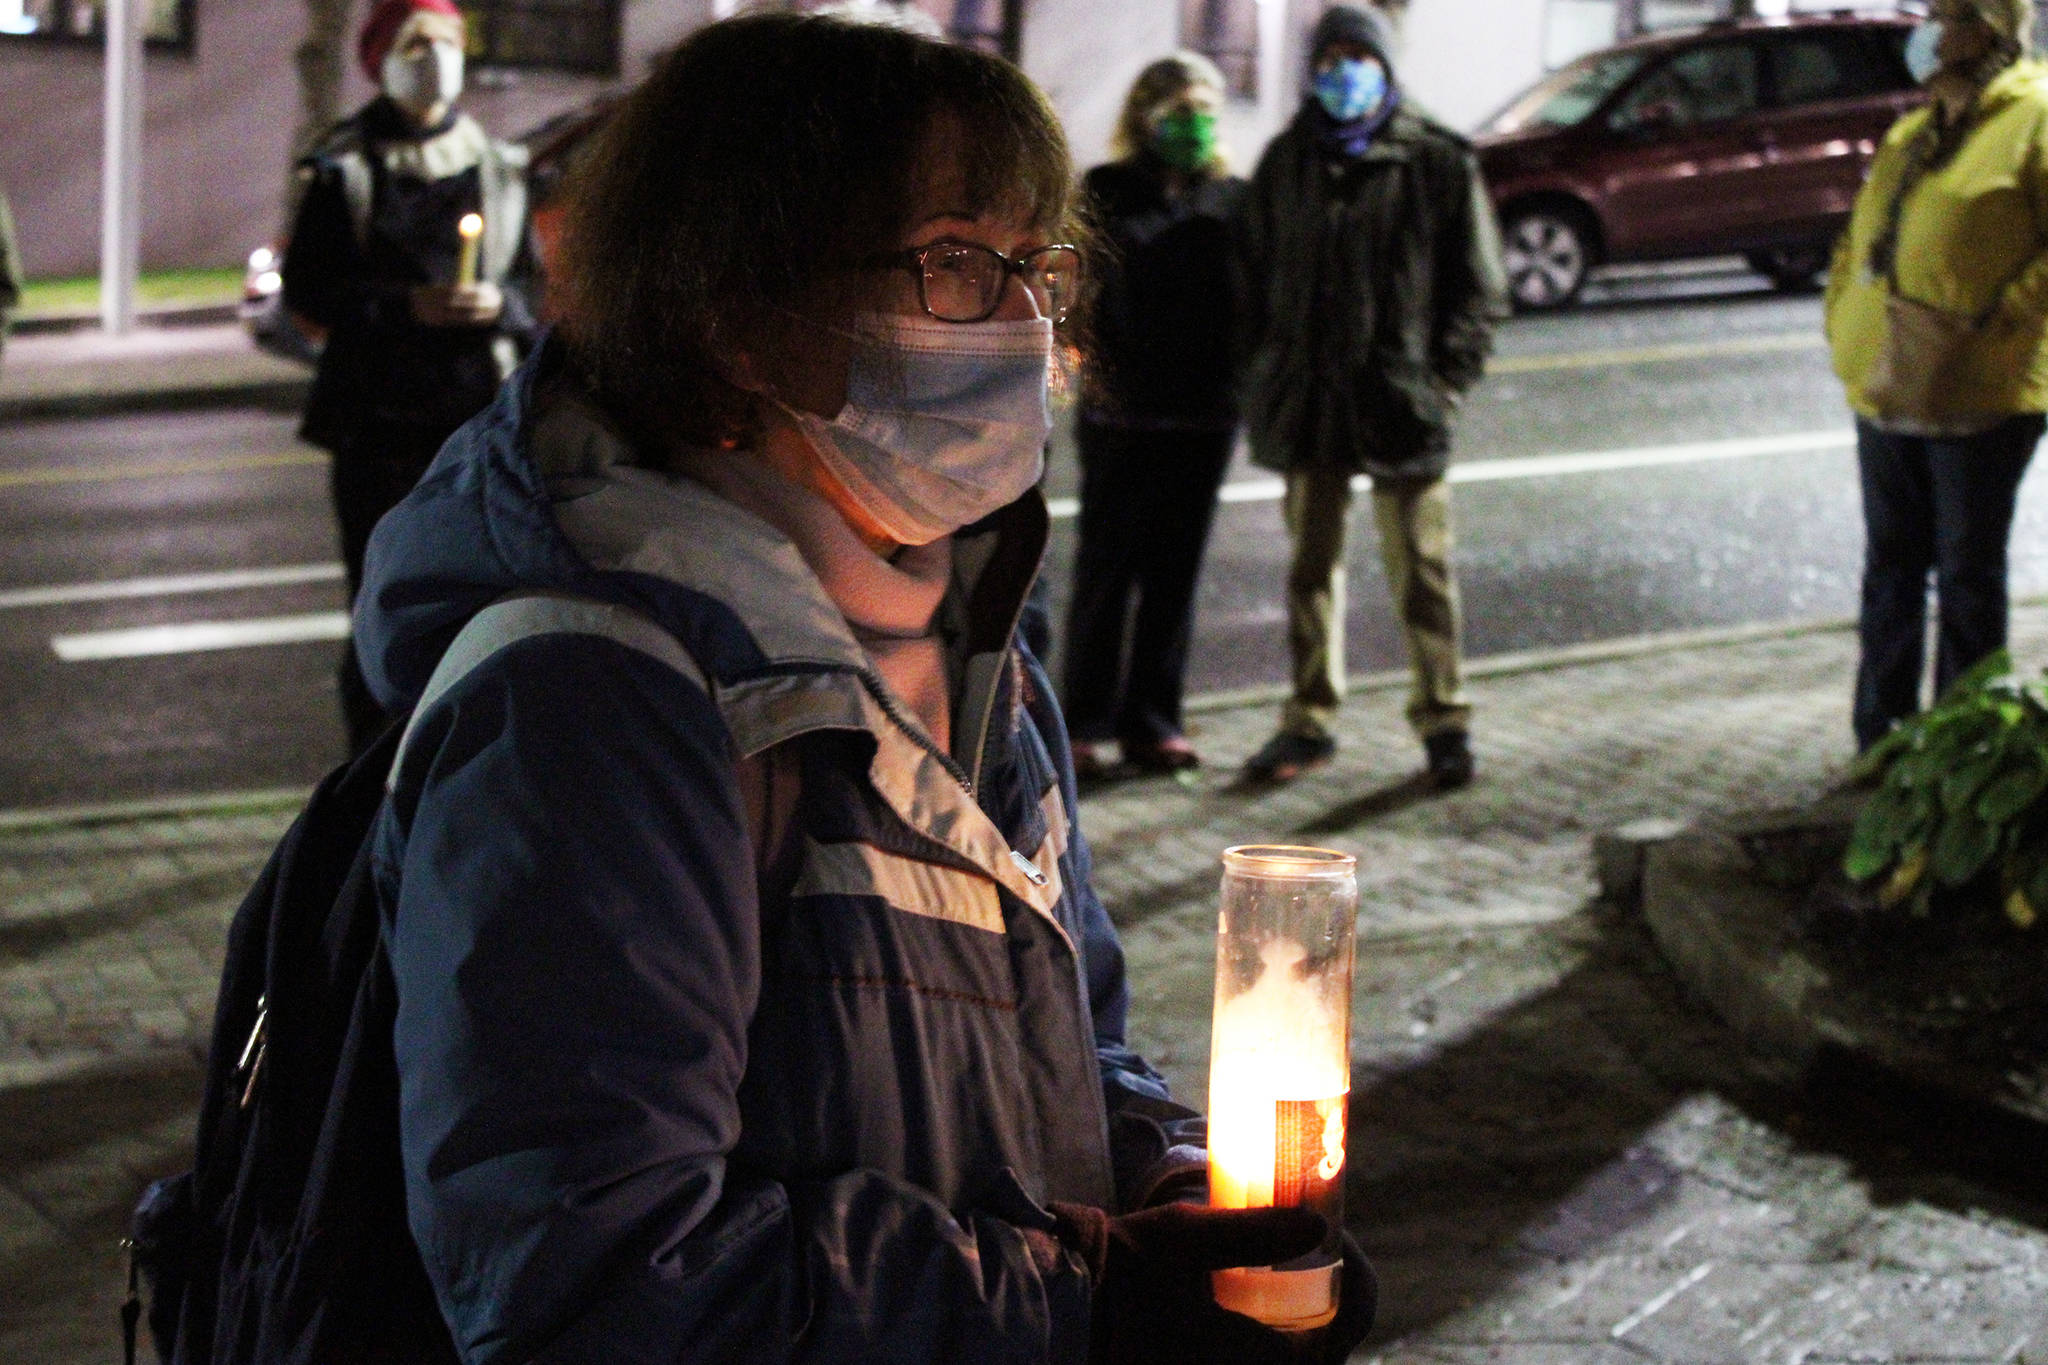 """Mary Szczepanski holds a candle decorated with a photo of the late Supreme Court Justice Ruth Bader Ginsburg at a candlelight vigil in downtown Juneau. """"I'm very inspired by everything she did and grateful that she was in our lives,"""" Szczepanski said. (Ben Hohenstatt / Juneau Empire)"""